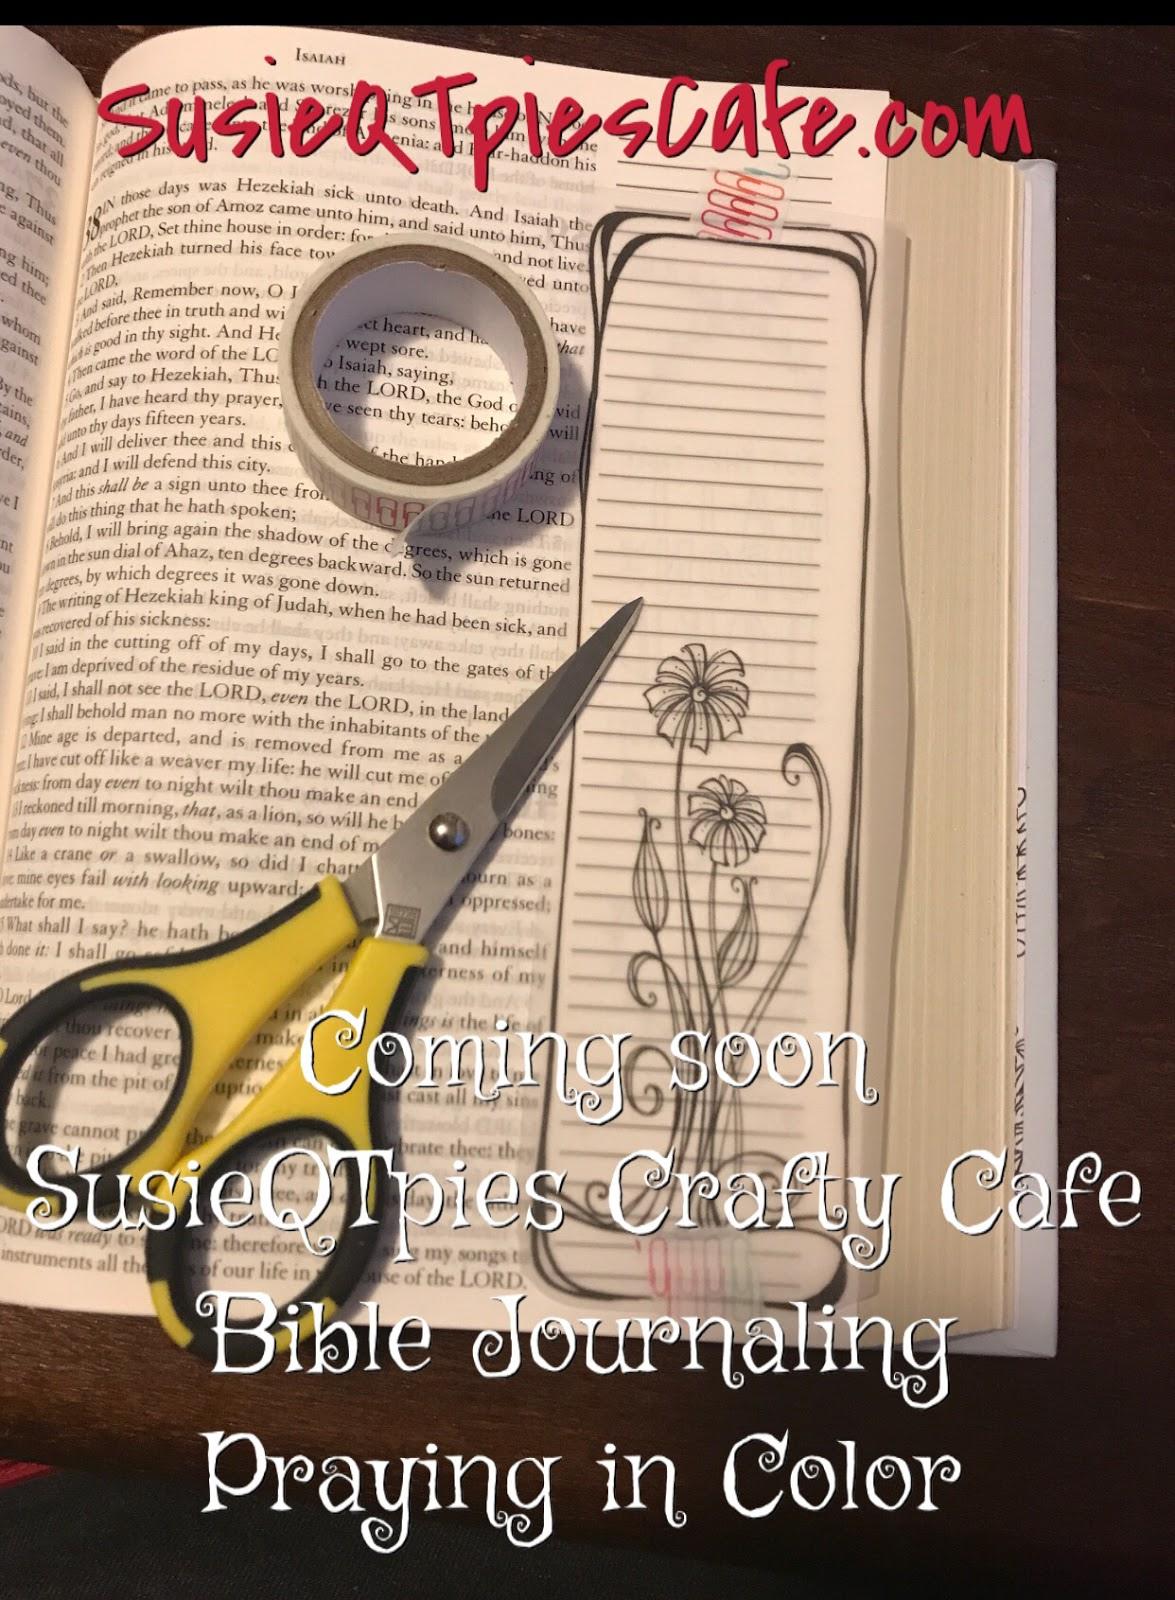 Bible Journaling Adult Coloring Pages Praying In Color And MORE Revamping Of The Blog To Include More Crafty Things Along With Food Giveaways